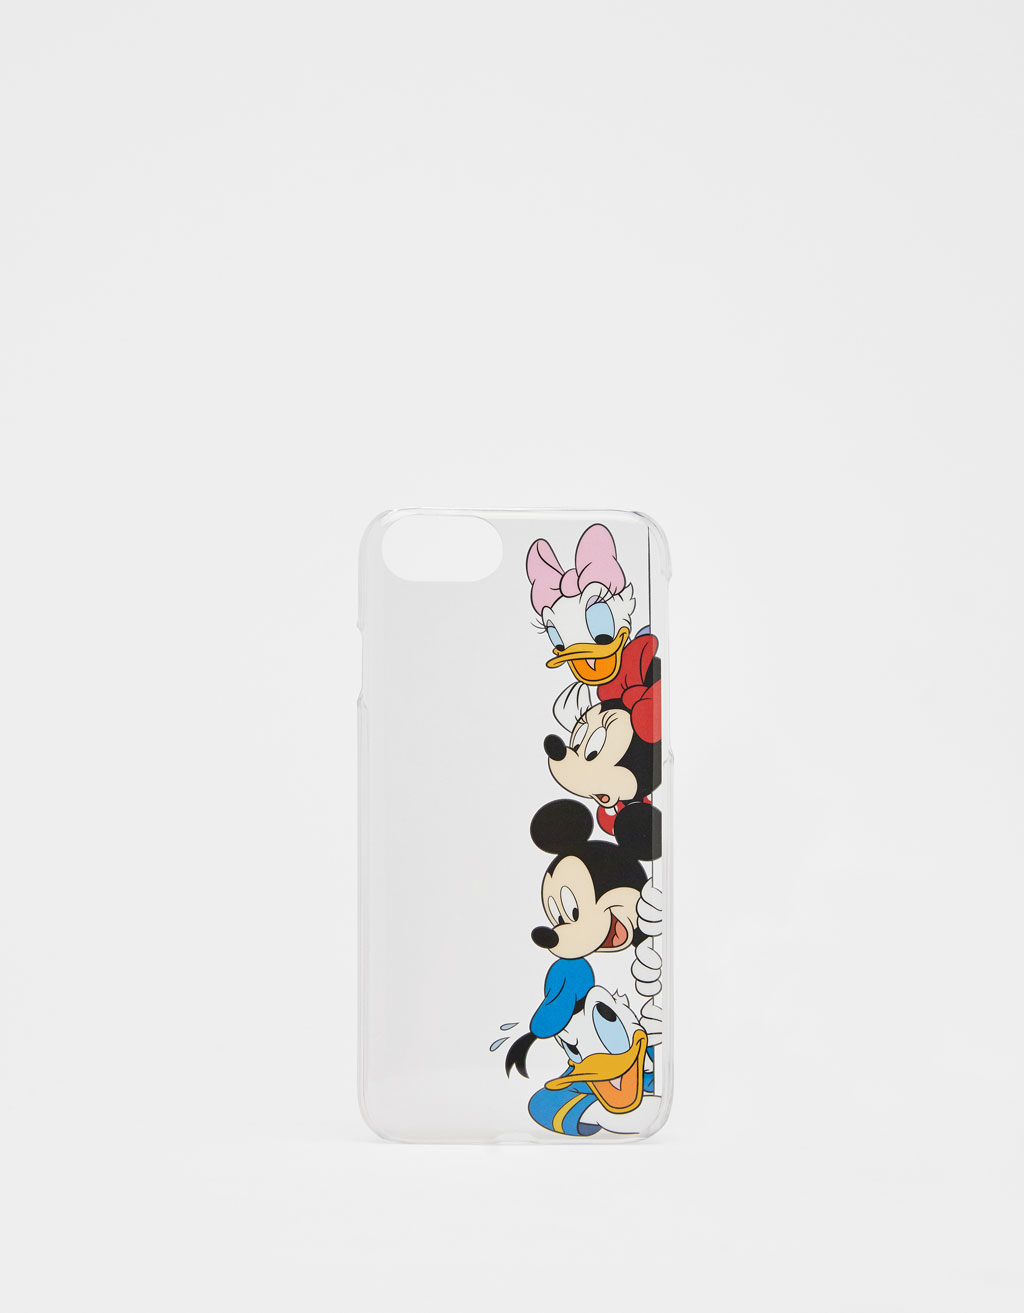 Disney hoesje voor iPhone 6 / 6S / 7 / 8